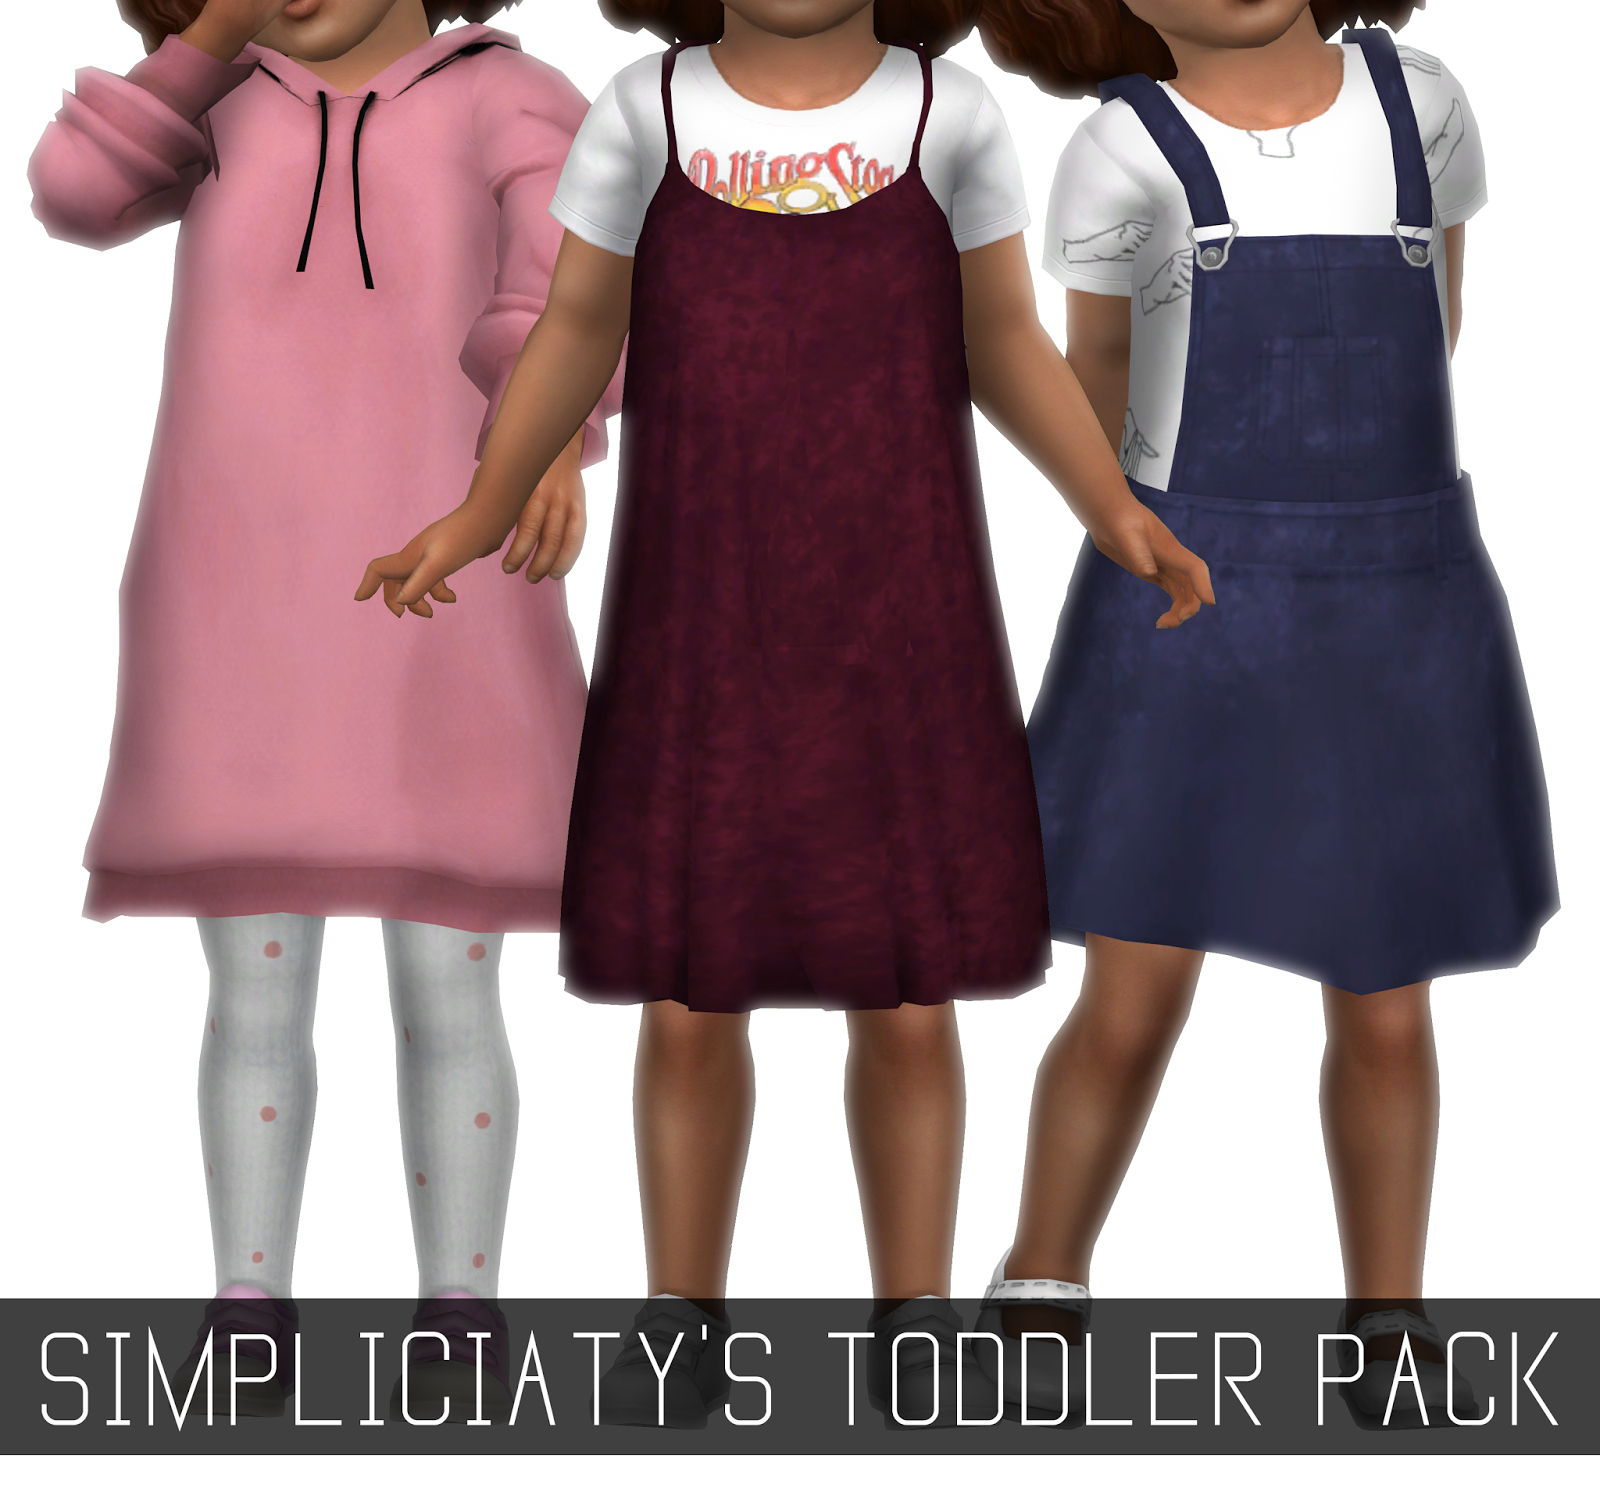 SIMPLICIATY'S TODDLERS PACK - Simpliciaty